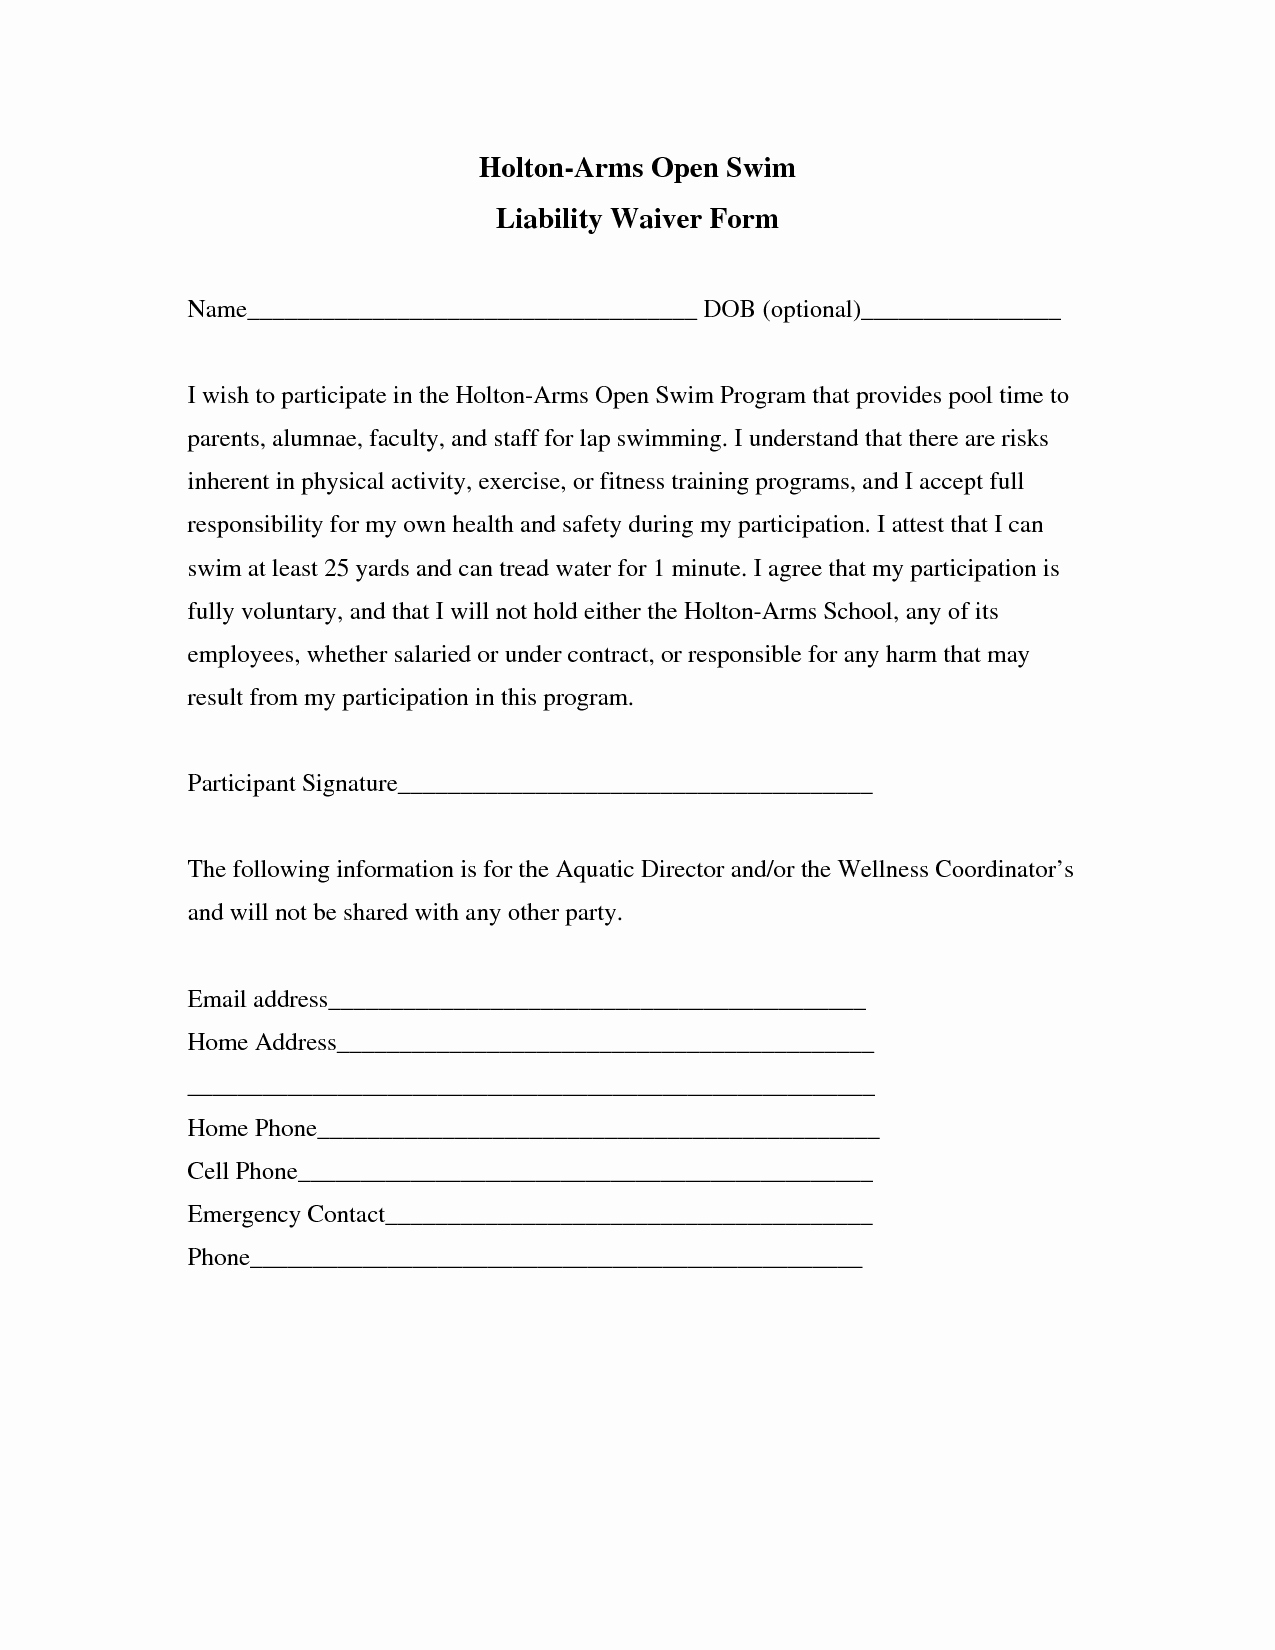 Liability Release form Template Luxury Liability Release form Template Free Printable Documents